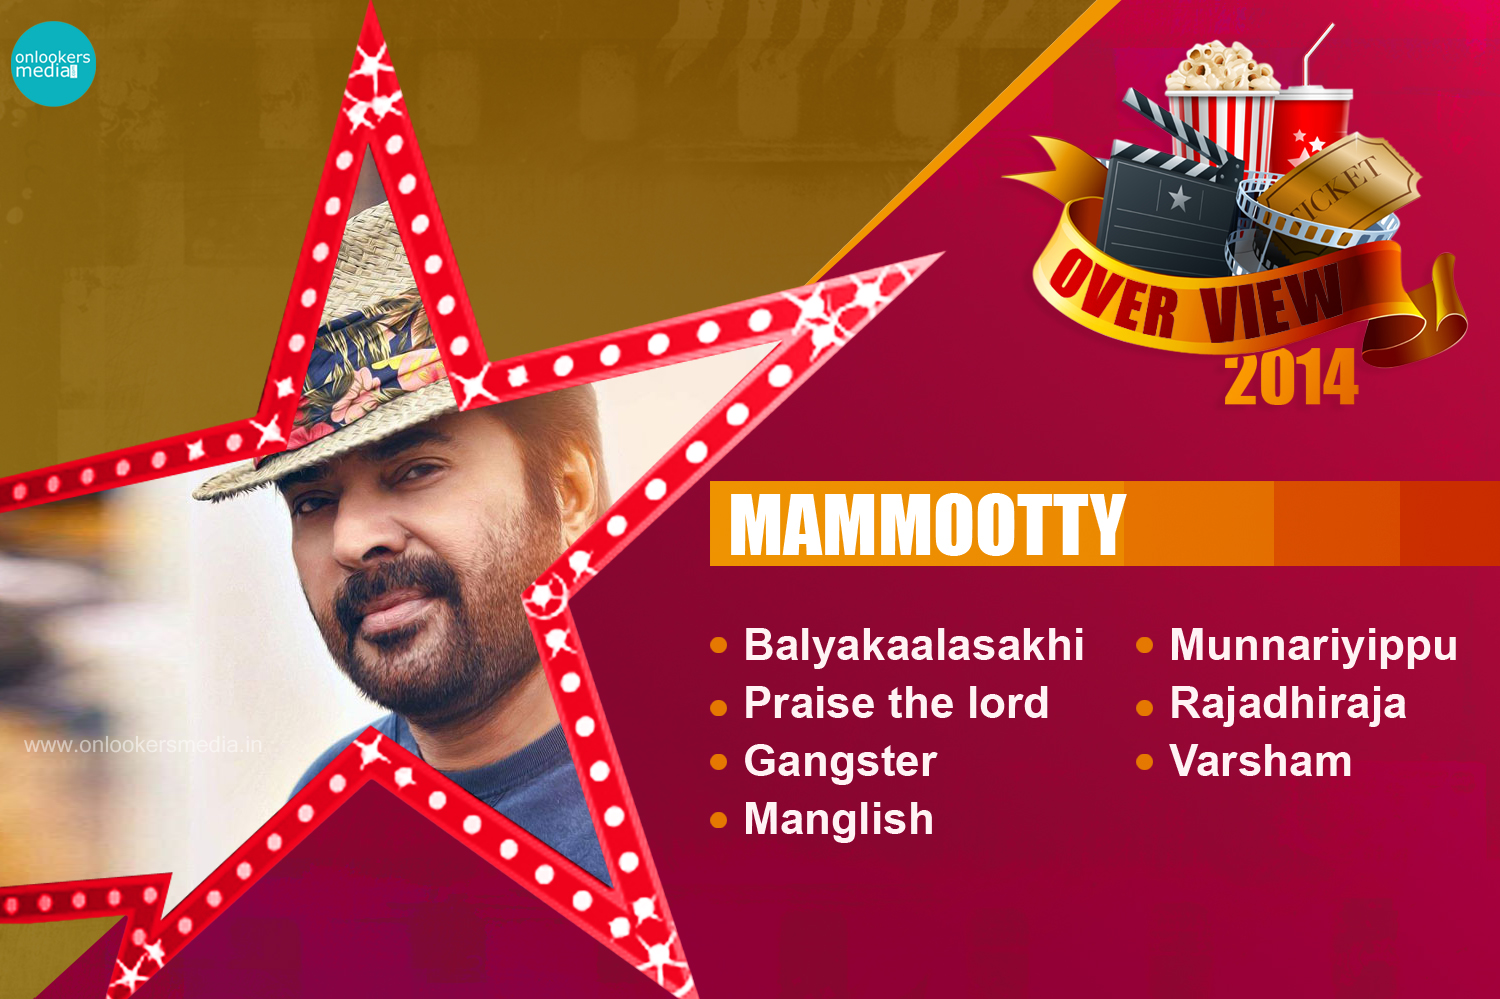 Mammootty 2014 Overview-Report-Hit Flop Movie List-Varsham, Munnariyippu, Rajadhiraja, Gangster-Onlookers Media